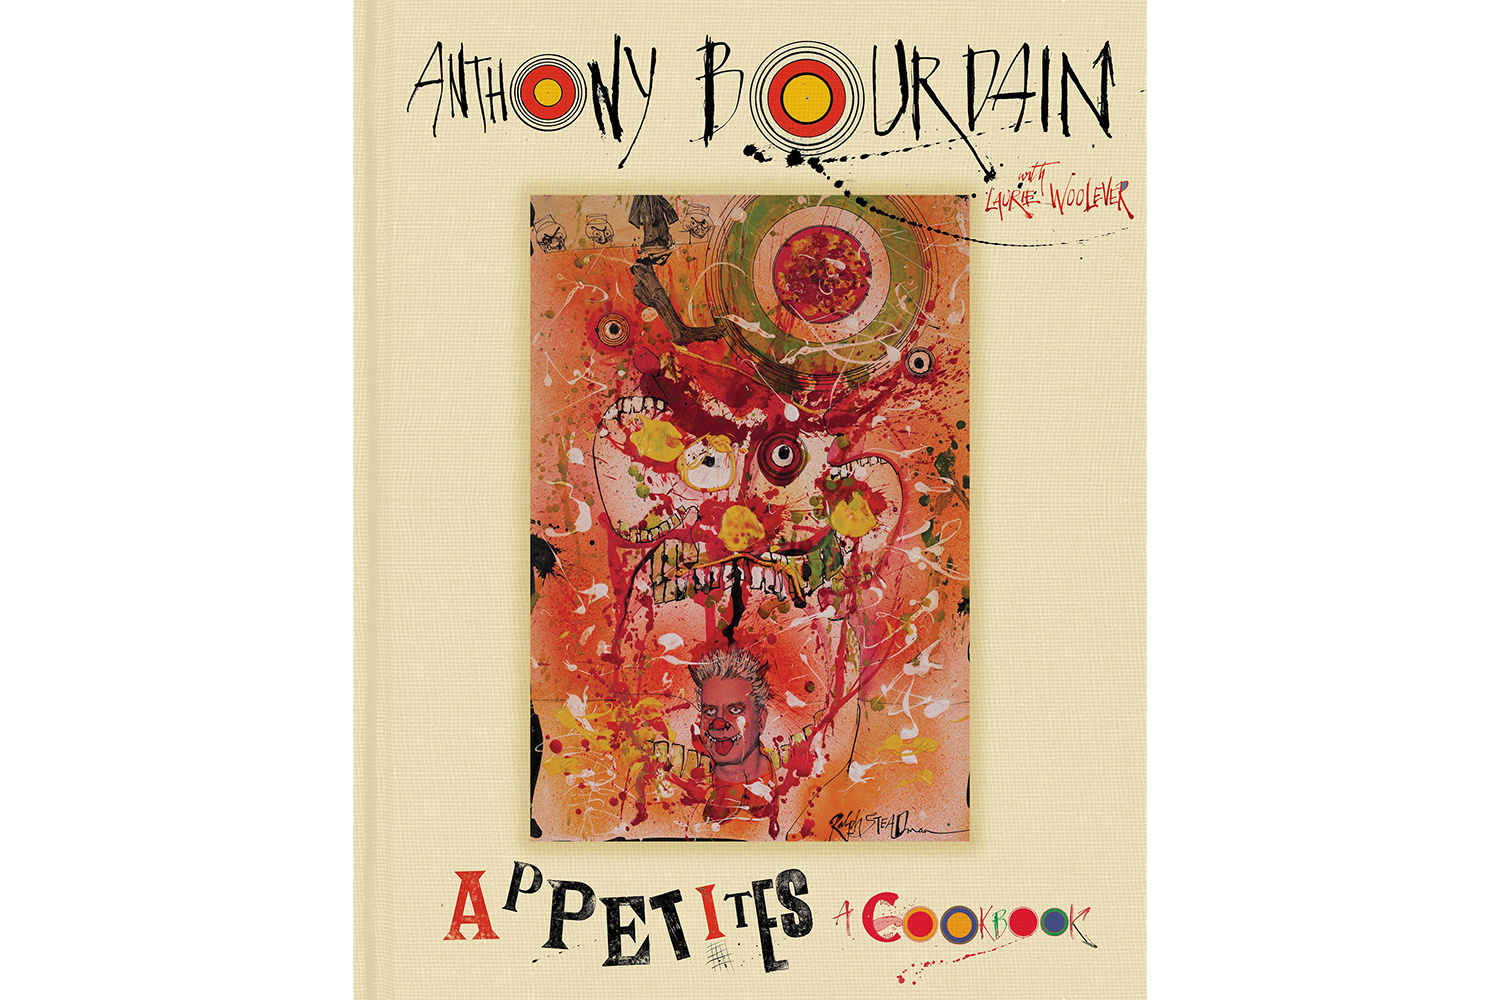 anthony-bourdain-appetites-cookbook-1